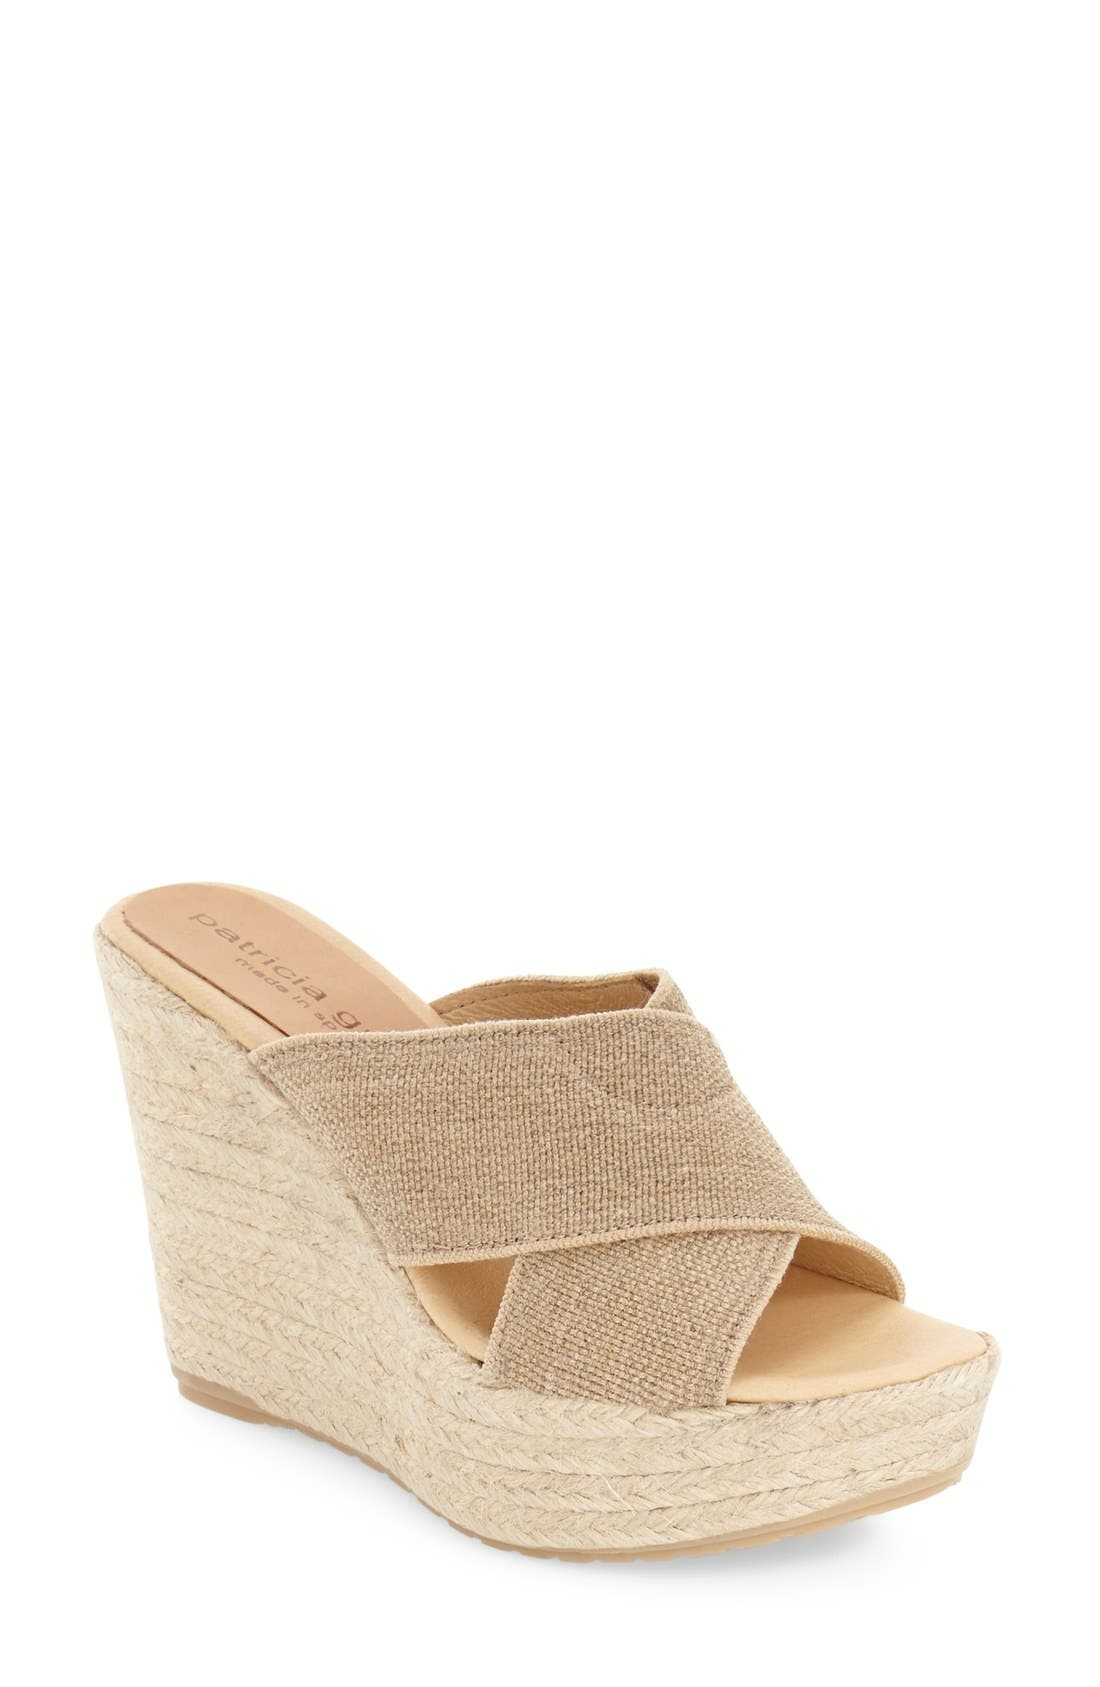 Main Image - patricia green 'Nora' Espadrille Wedge (Women)